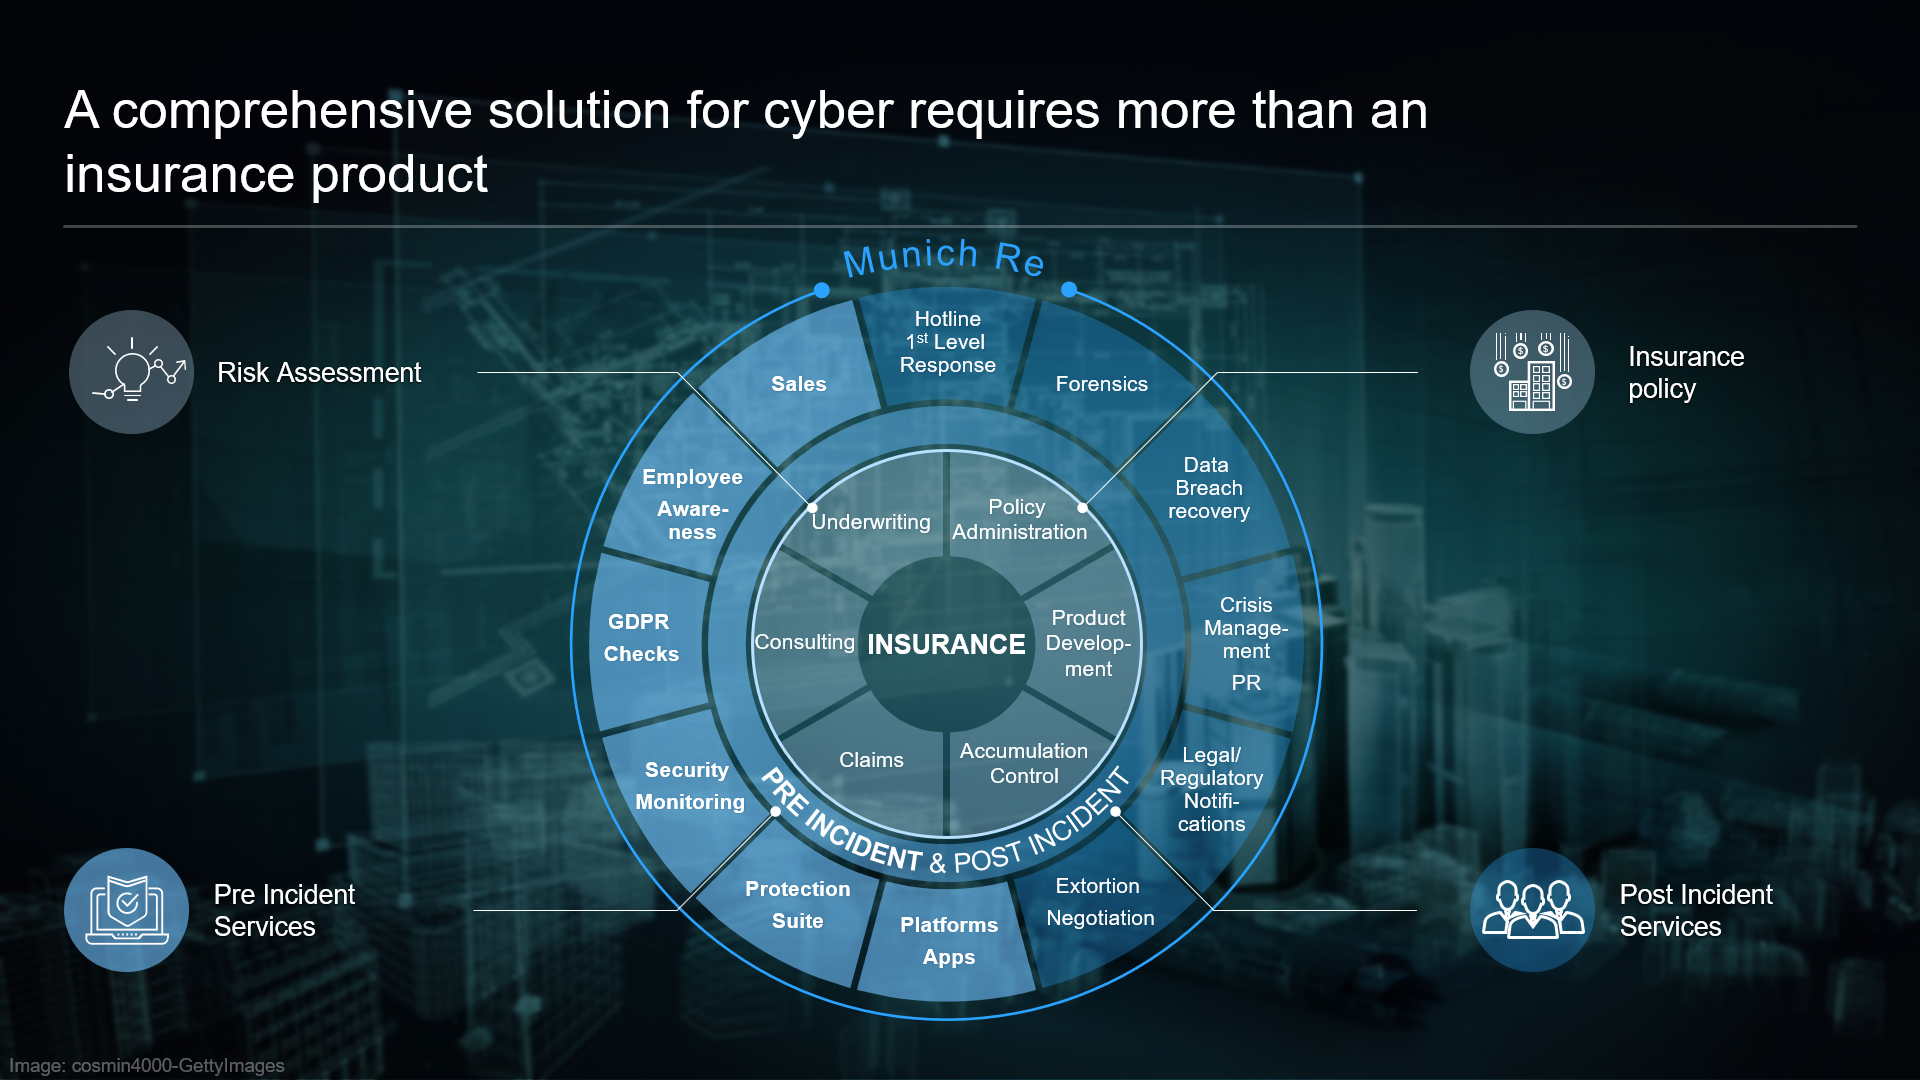 Comprehensive Cyber Solutions from Munich Re